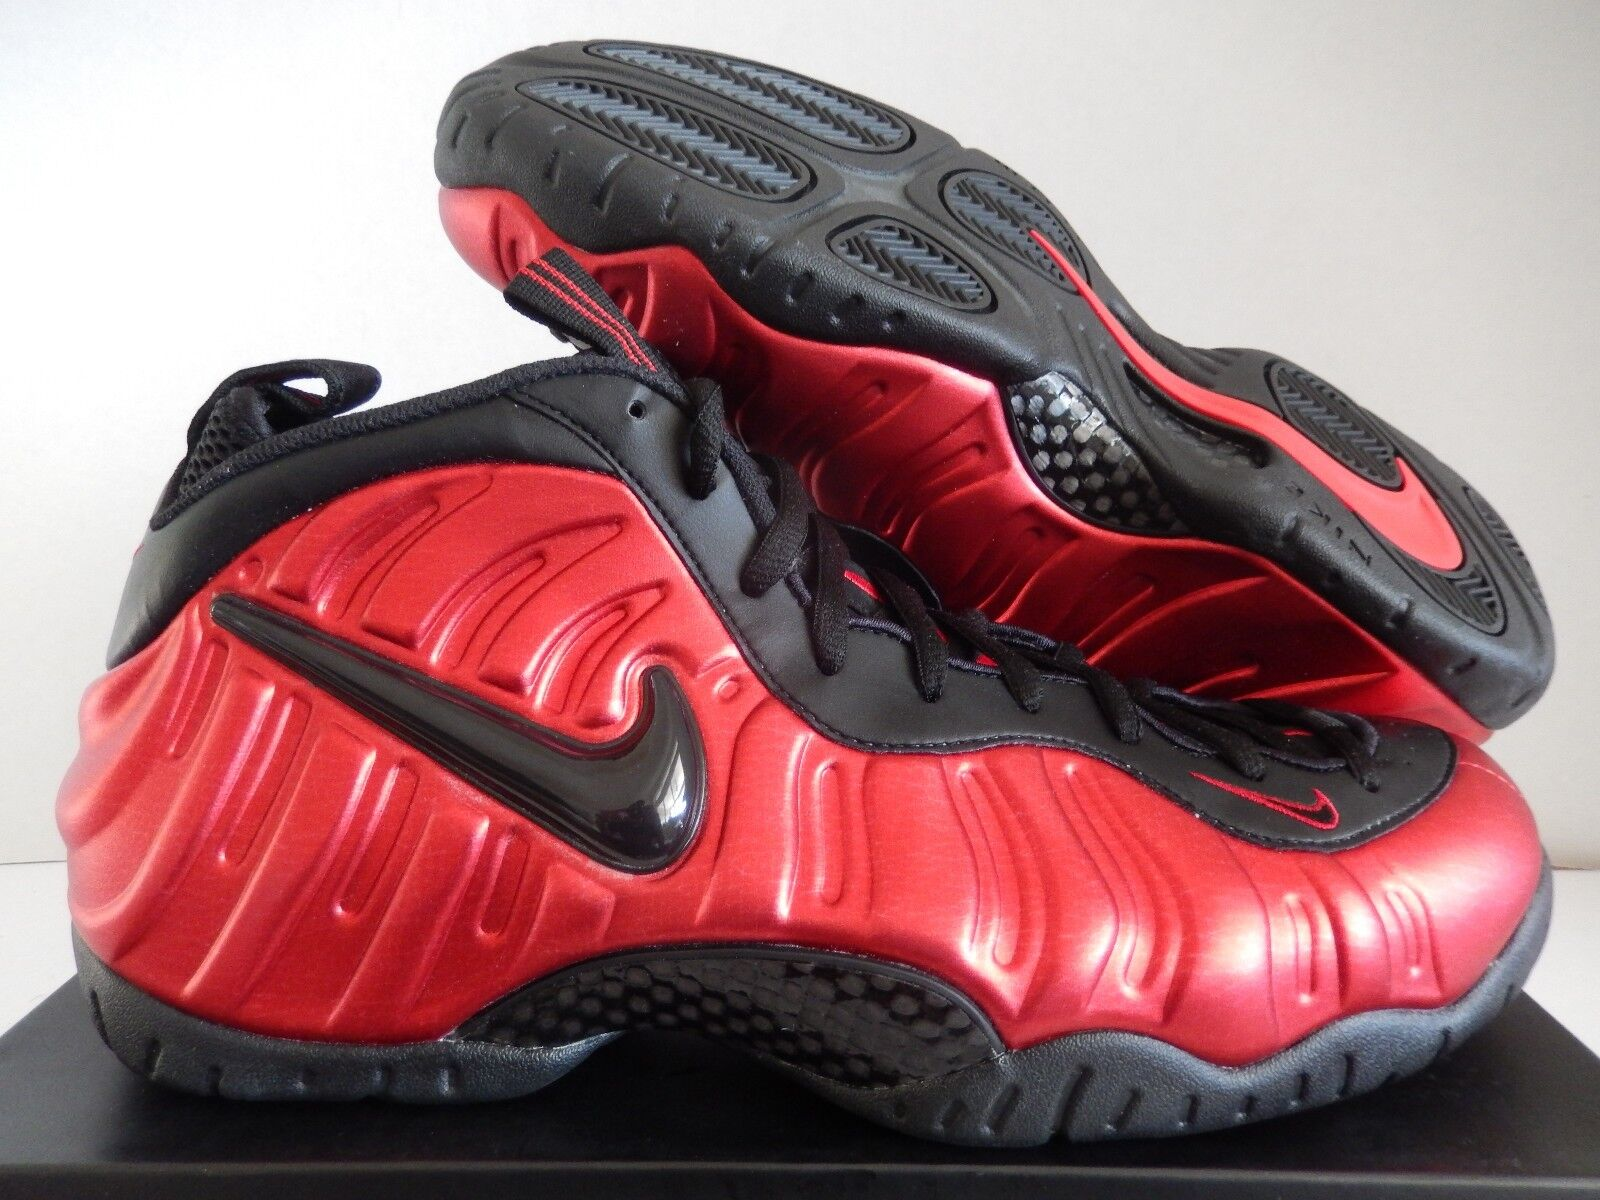 NIKE AIR FOAMPOSITE PRO UNIVERSITY RED-BLACK Price reduction New shoes for men and women, limited time discount